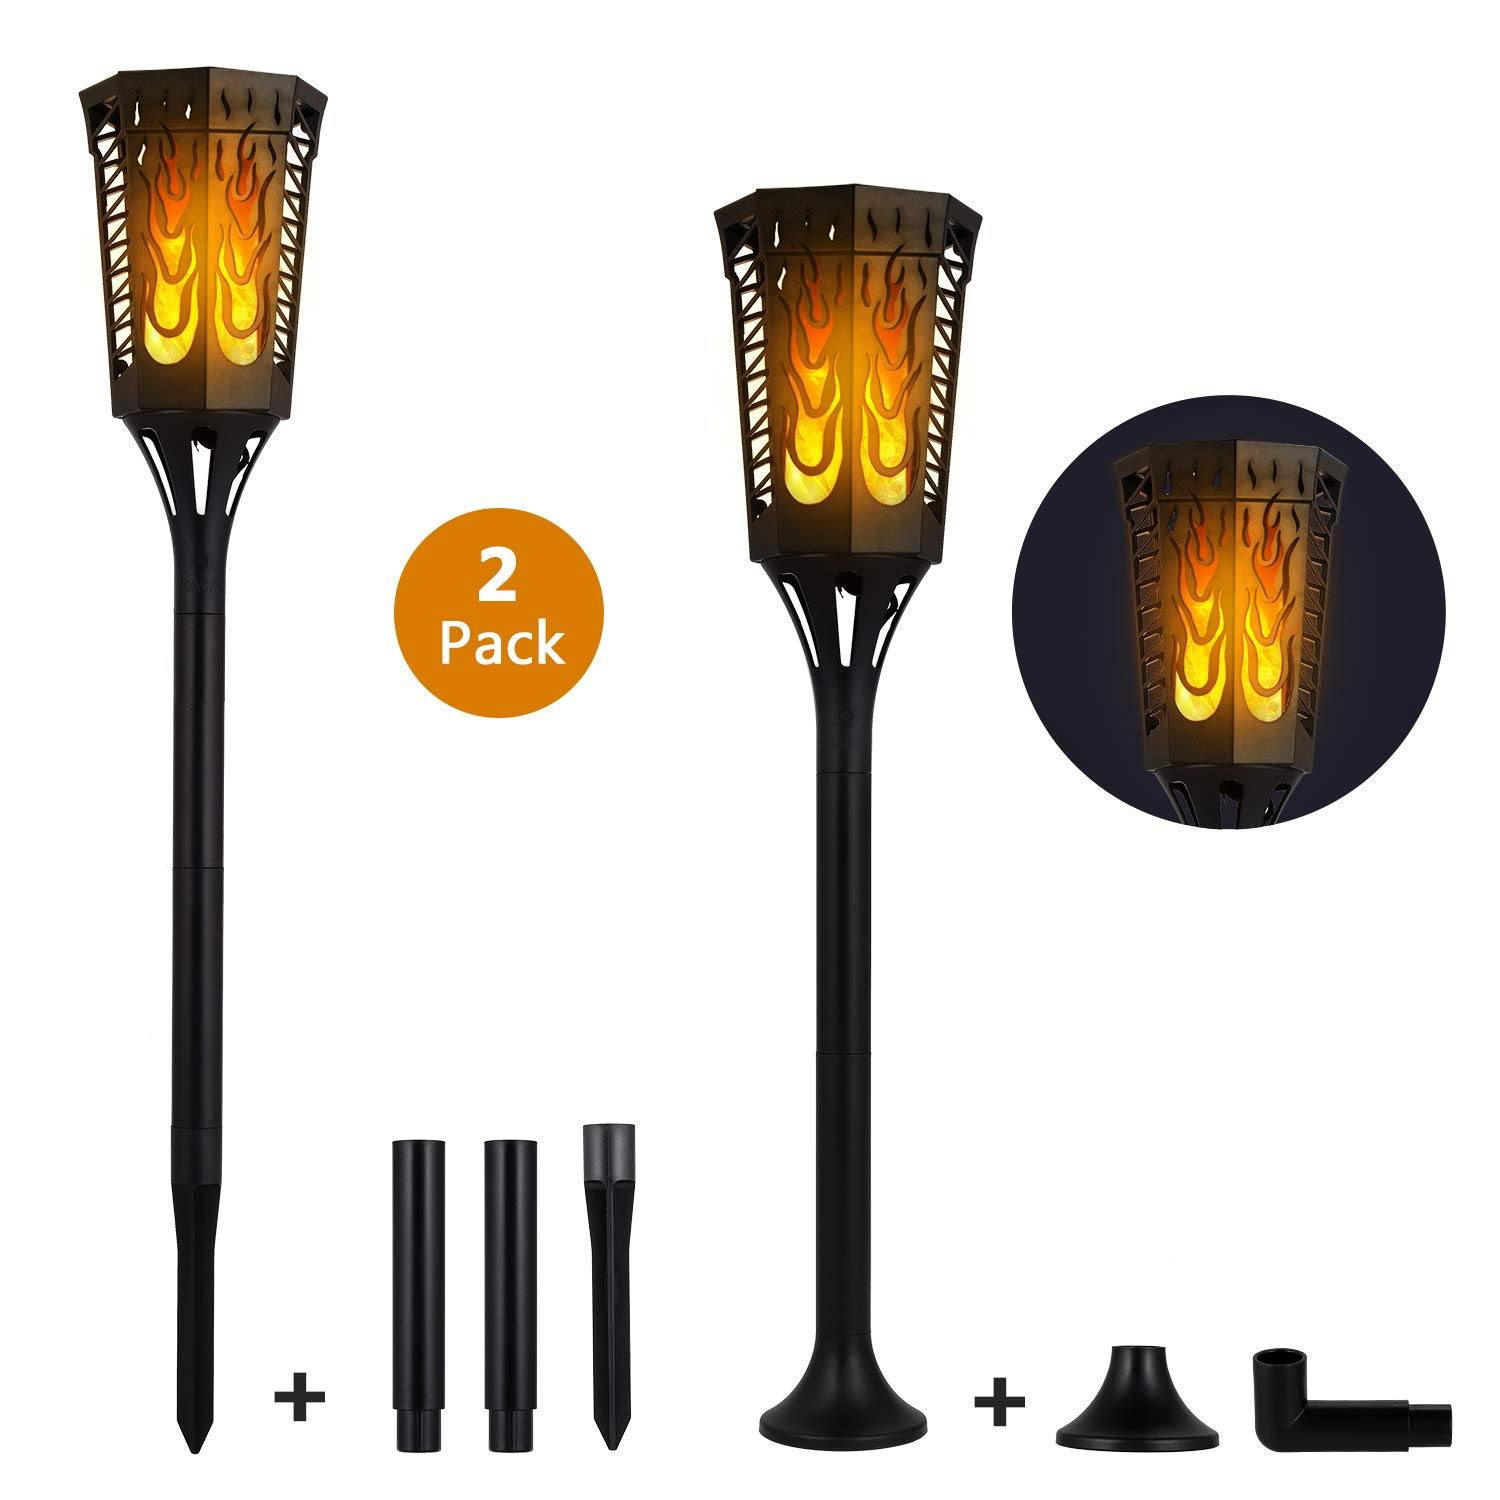 Sailnovo Solar Torch Light Flickering Flame Outdoor Dancing Flickering Flame Tiki Lights 4 Usage Modes 96 LED IP65 Waterproof Landscape Lighting Dusk to Dawn Auto On//Off Backyard Decoration 2 Pack